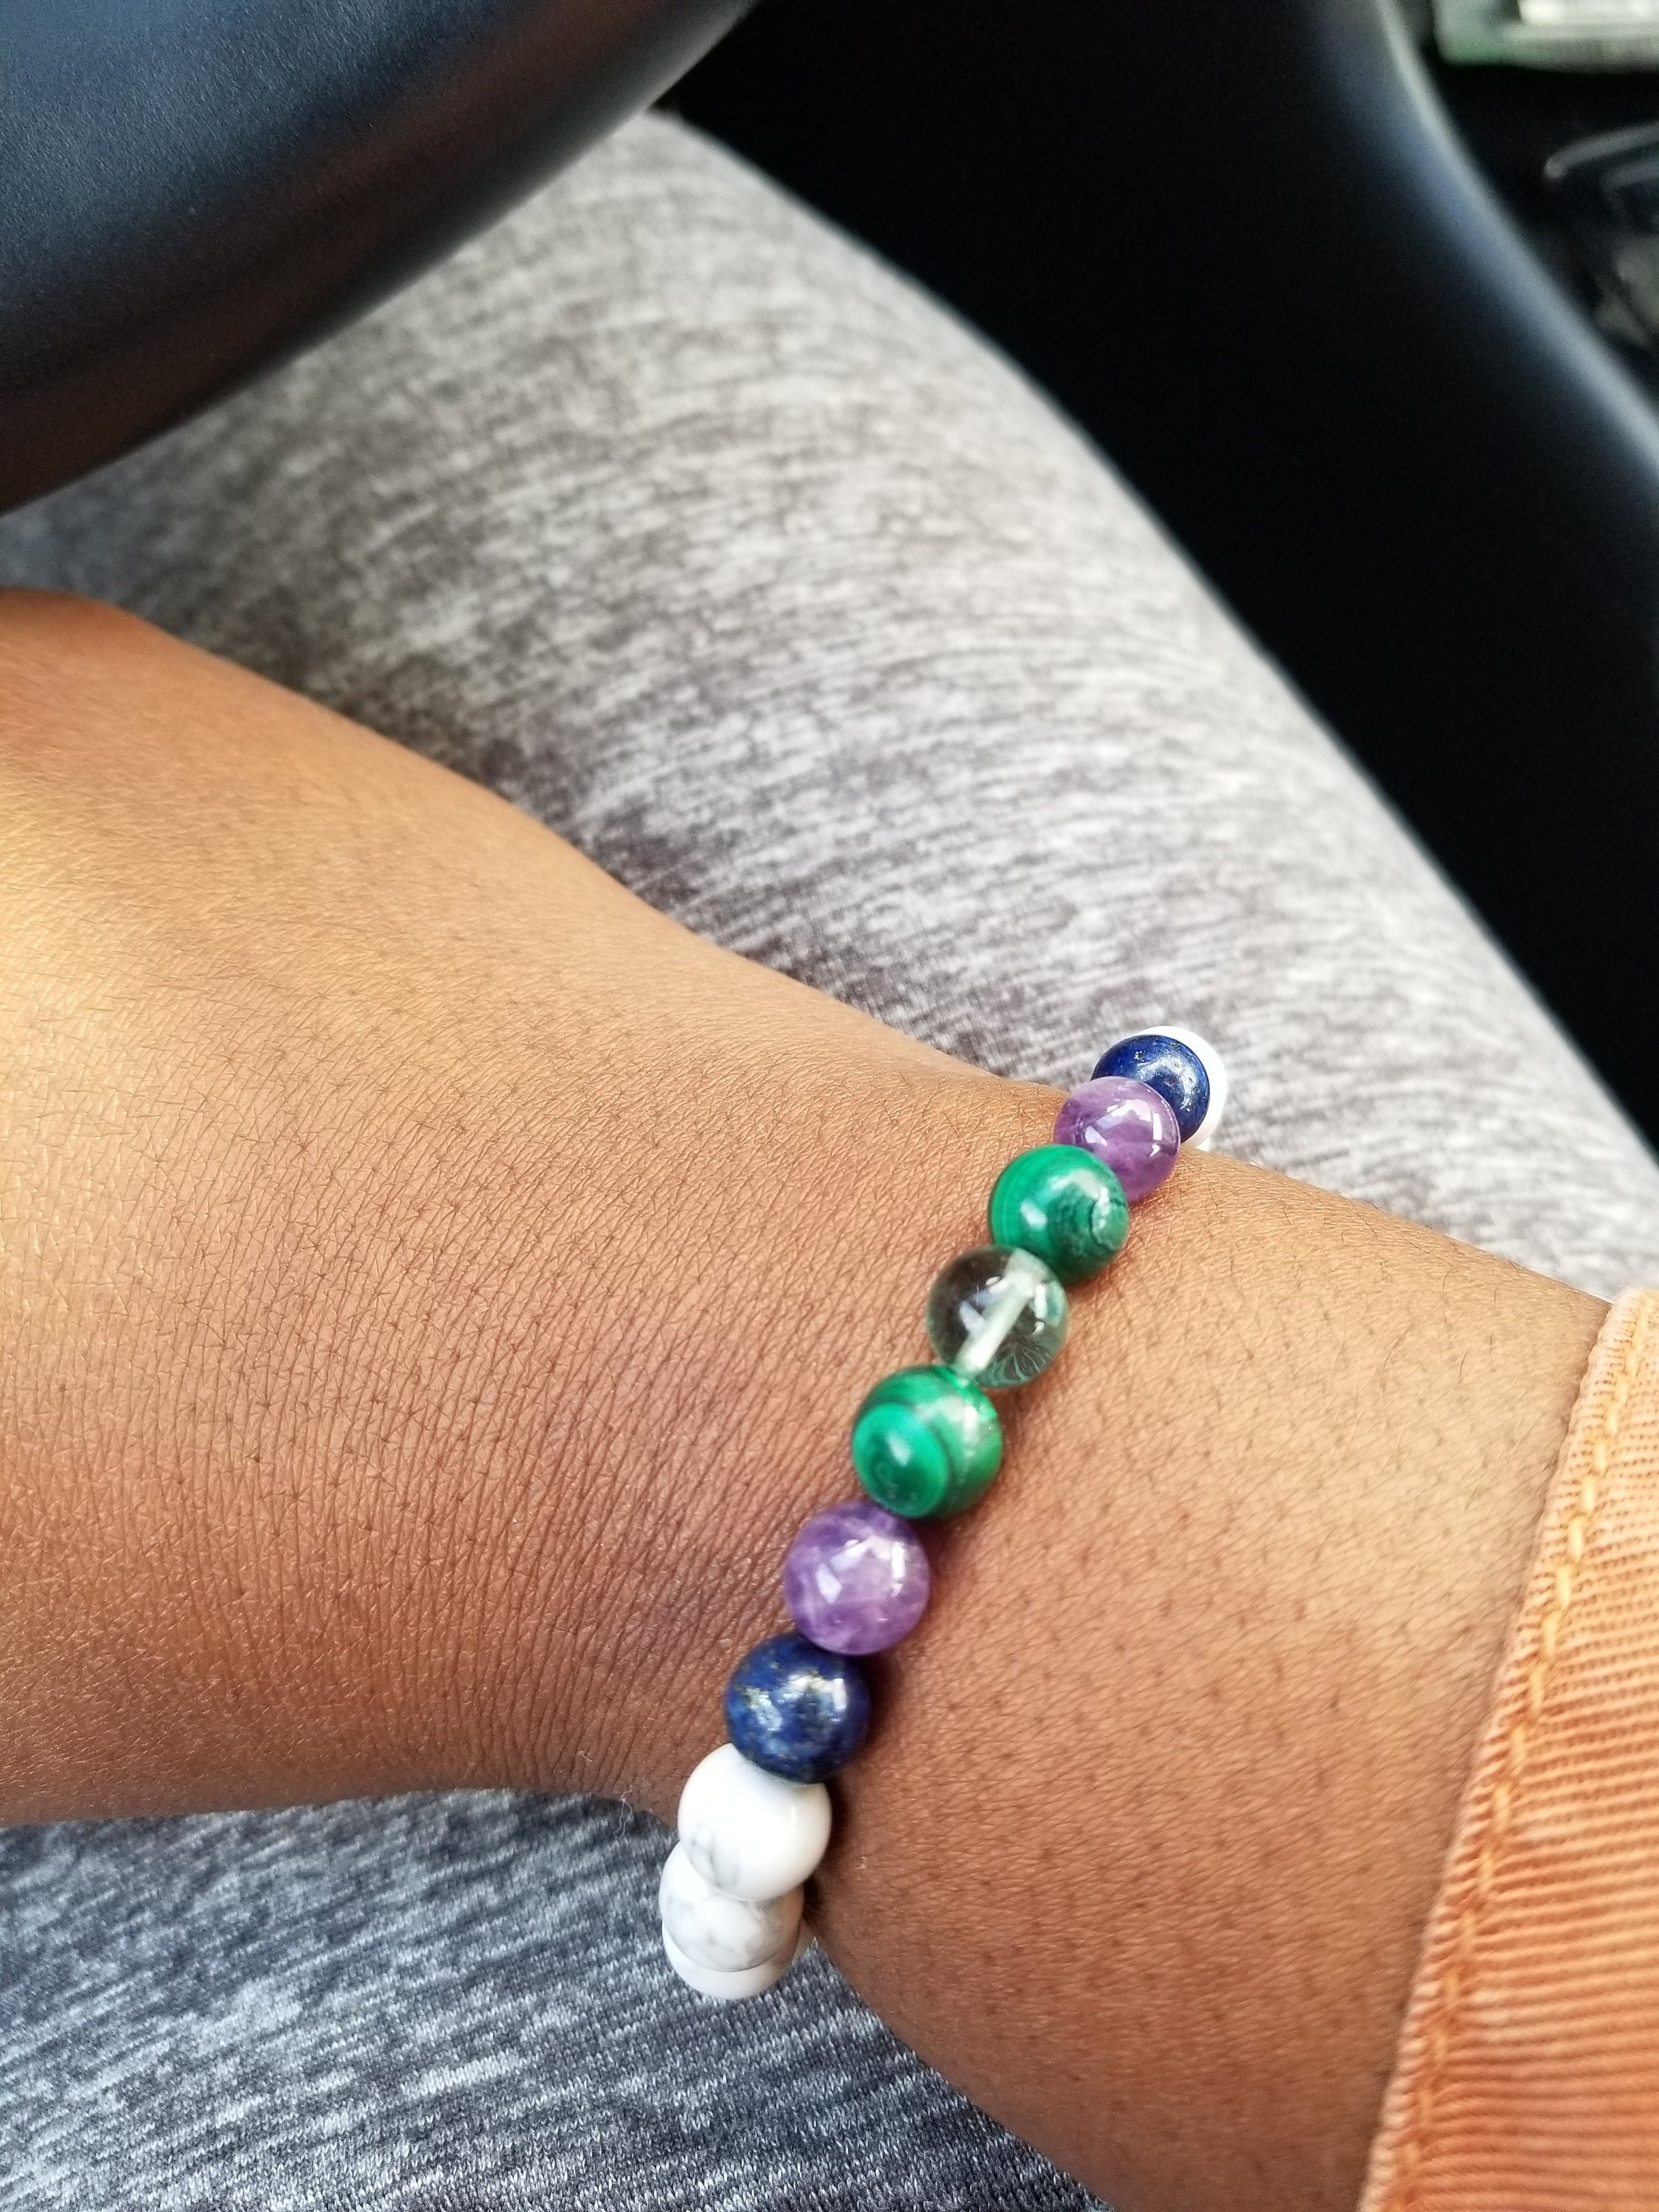 Tamara Myers added a photo of their purchase